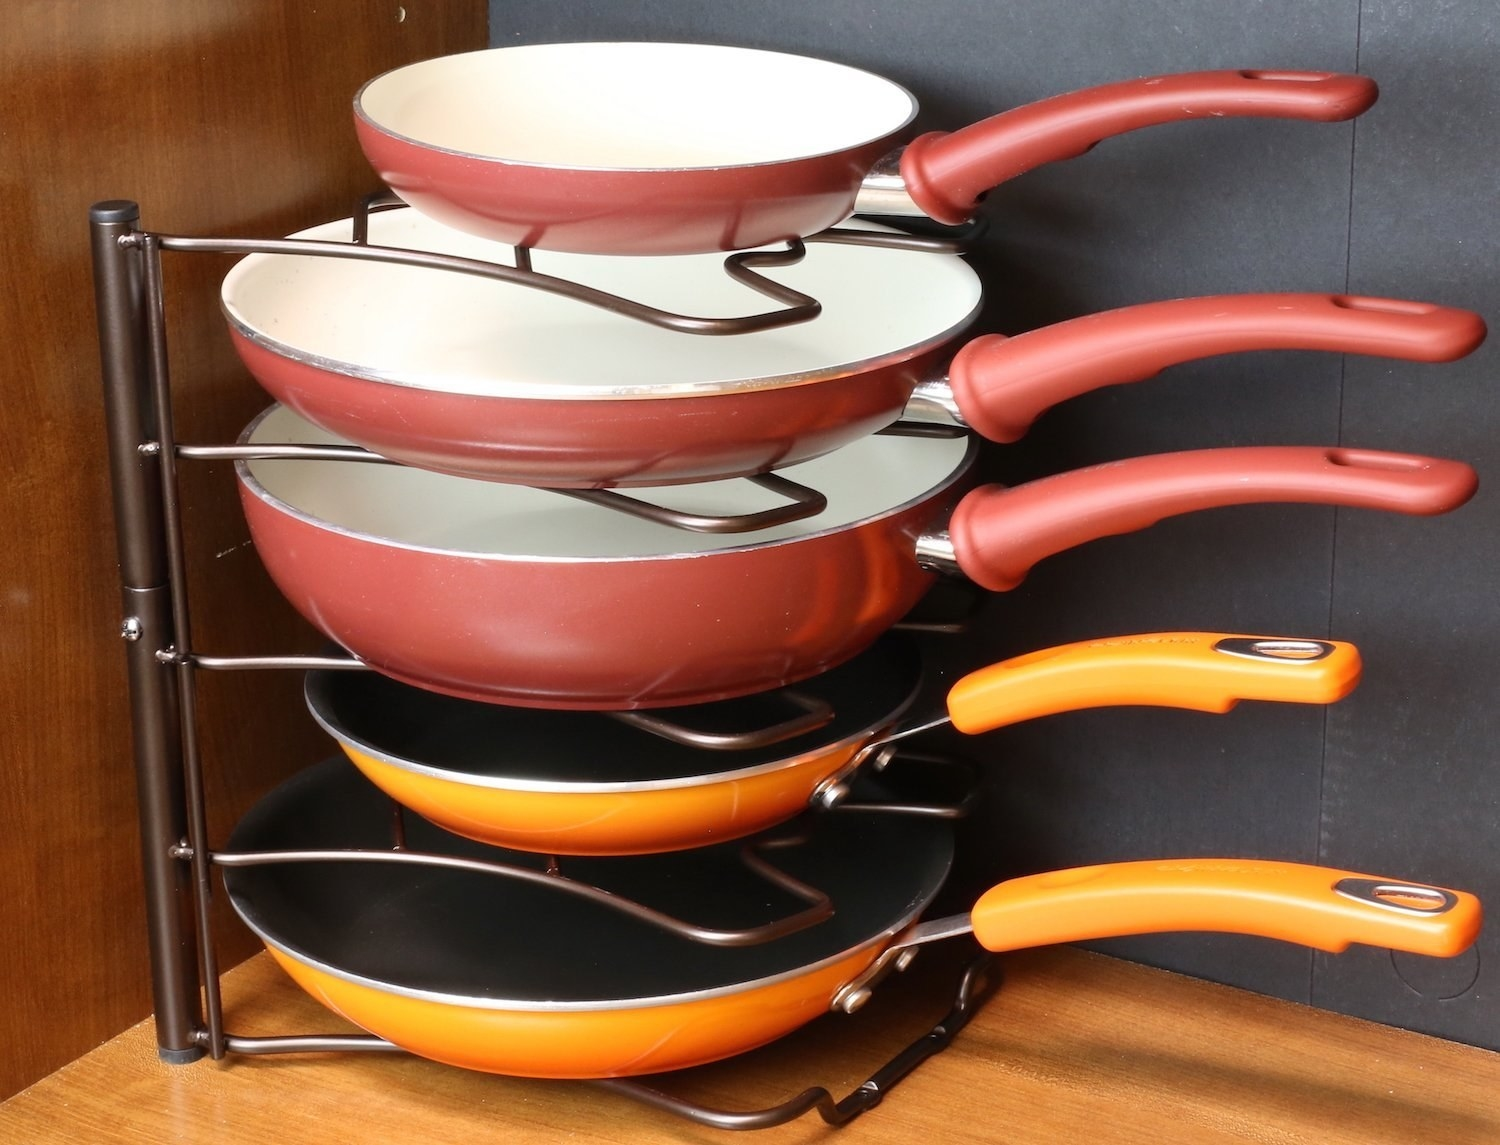 Pans stacked on top of one another in organizer